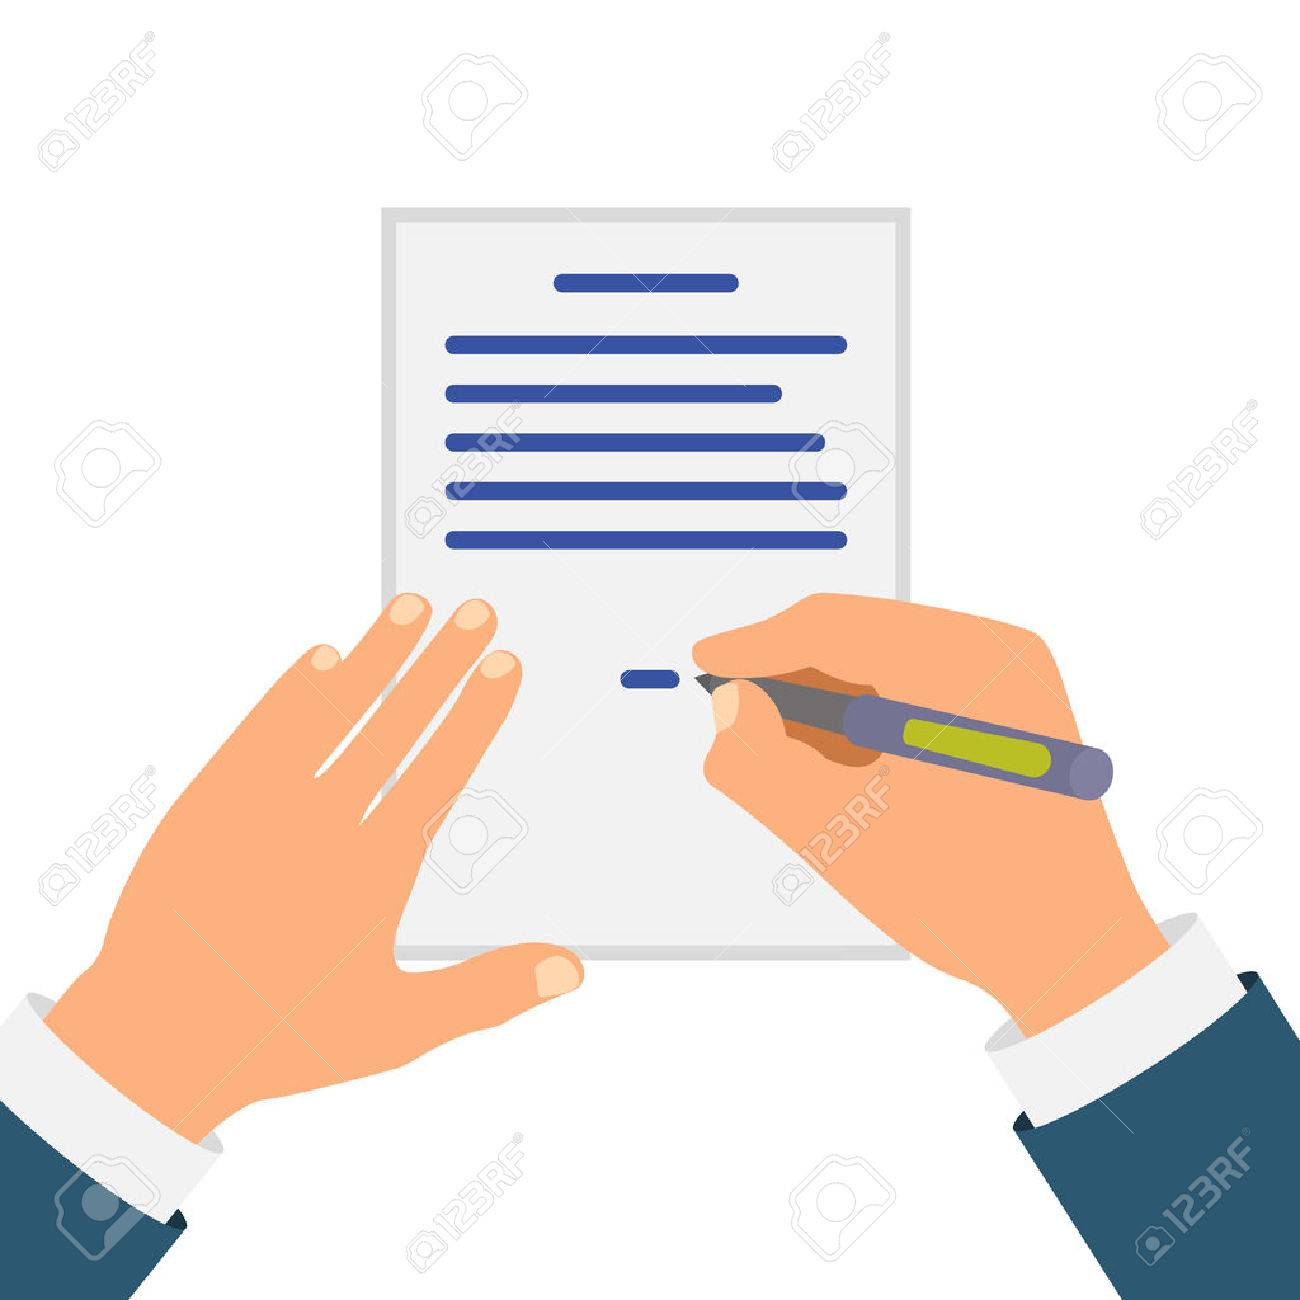 Colored Cartooned Hand Signing Contract Graphic Design on Blue Background. - 64756581